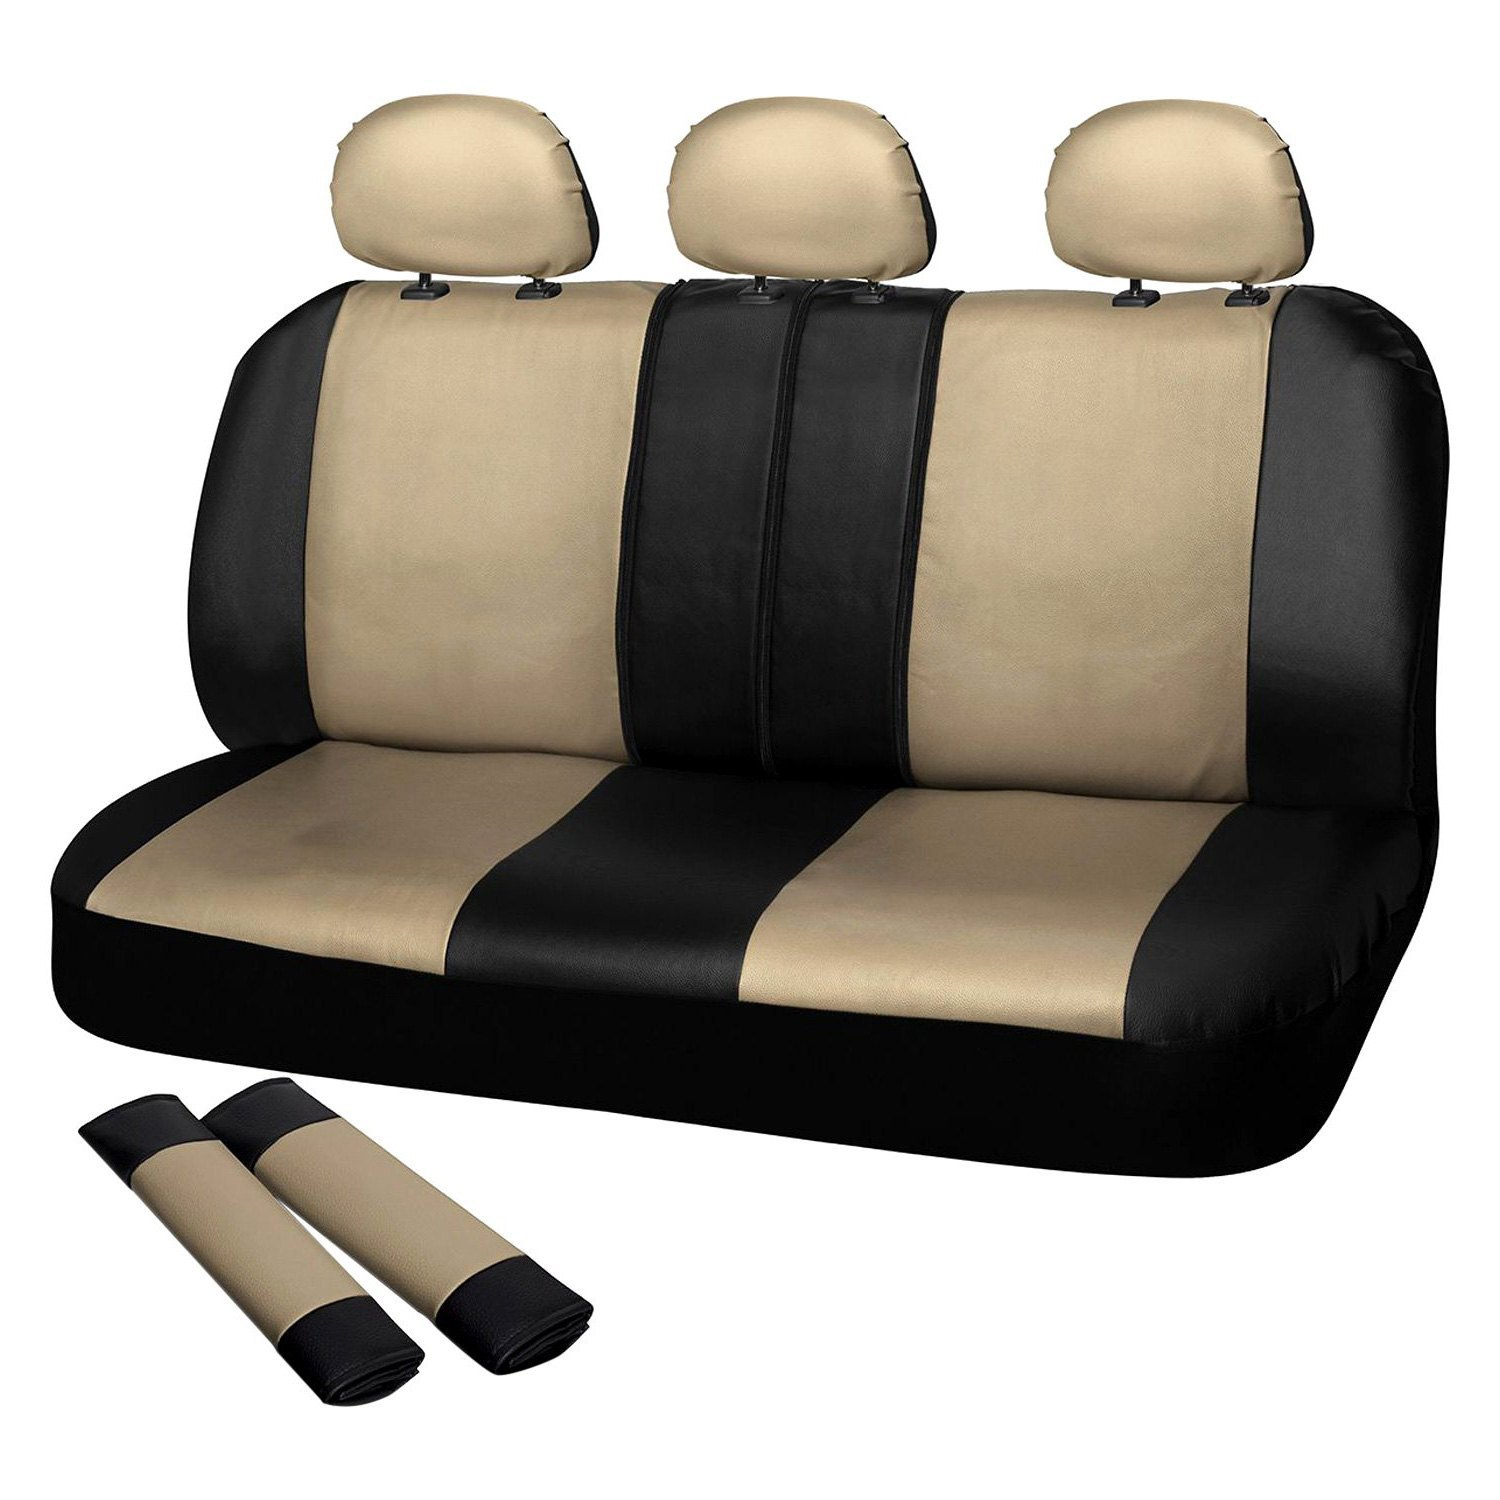 Fine Oxgord Scpu S2D Bg Faux Leather 2Nd Row Beige Black Seat Cover Set Andrewgaddart Wooden Chair Designs For Living Room Andrewgaddartcom